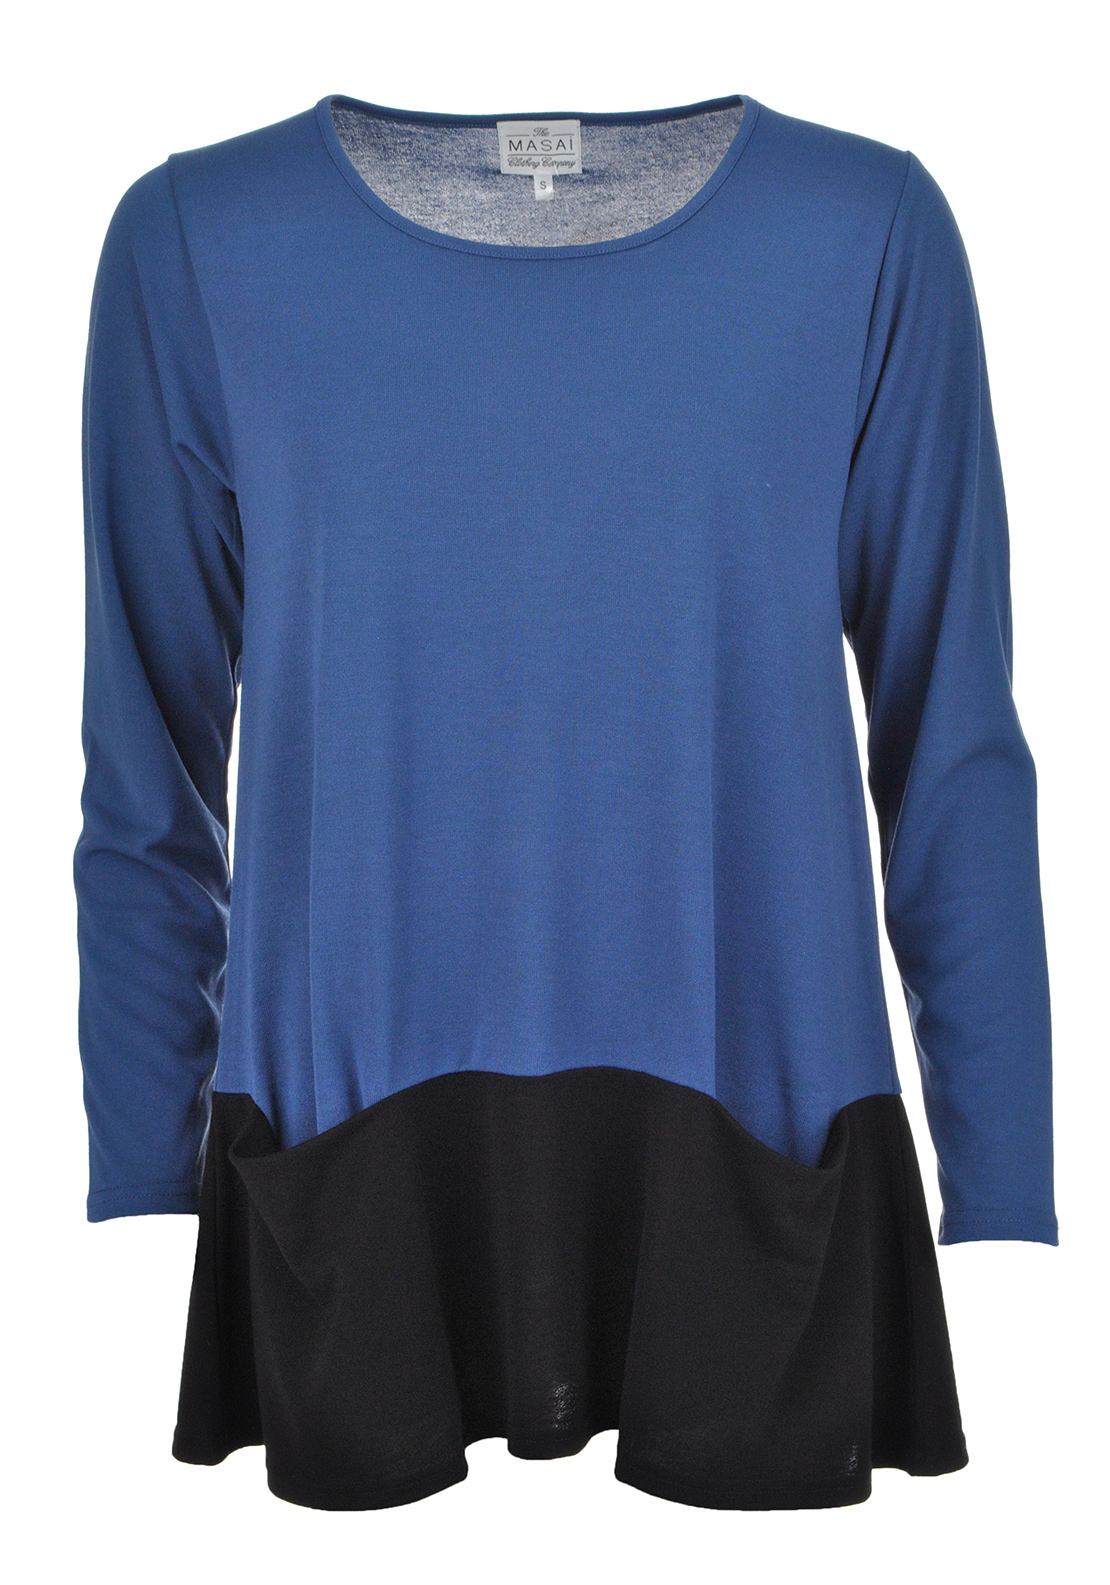 The Masai Clothing Company Blosna A-Line Long Sleeve Top, Blue